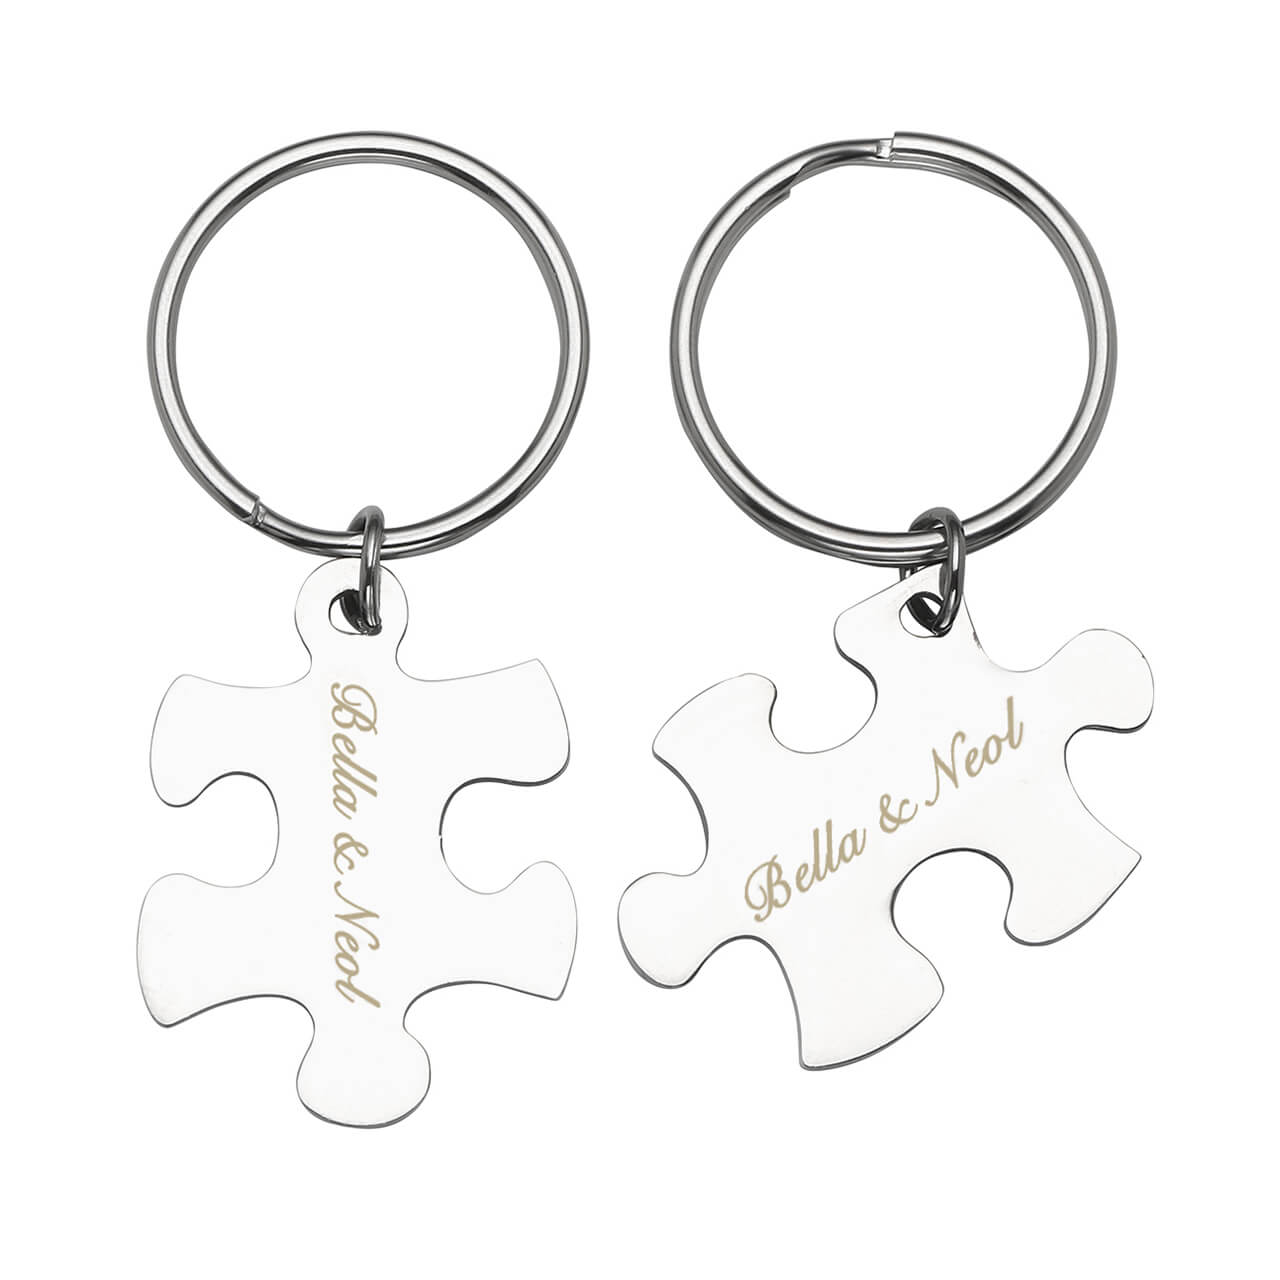 Jovivi Customize Puzzle Name Message Keychain Set for